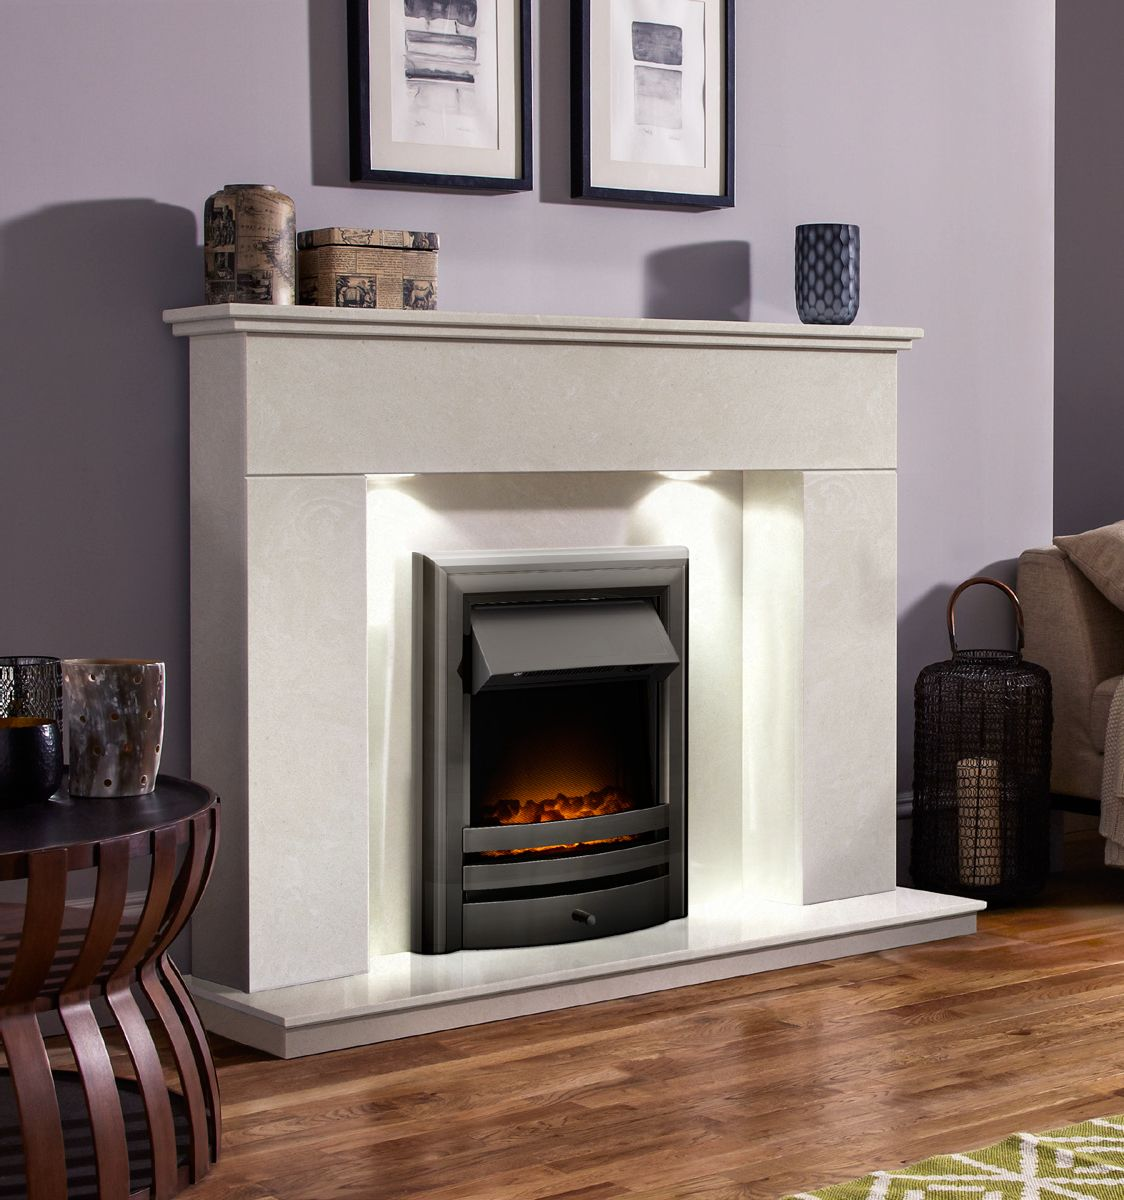 Fire & Fireplace installed from our showroom in Sunderland